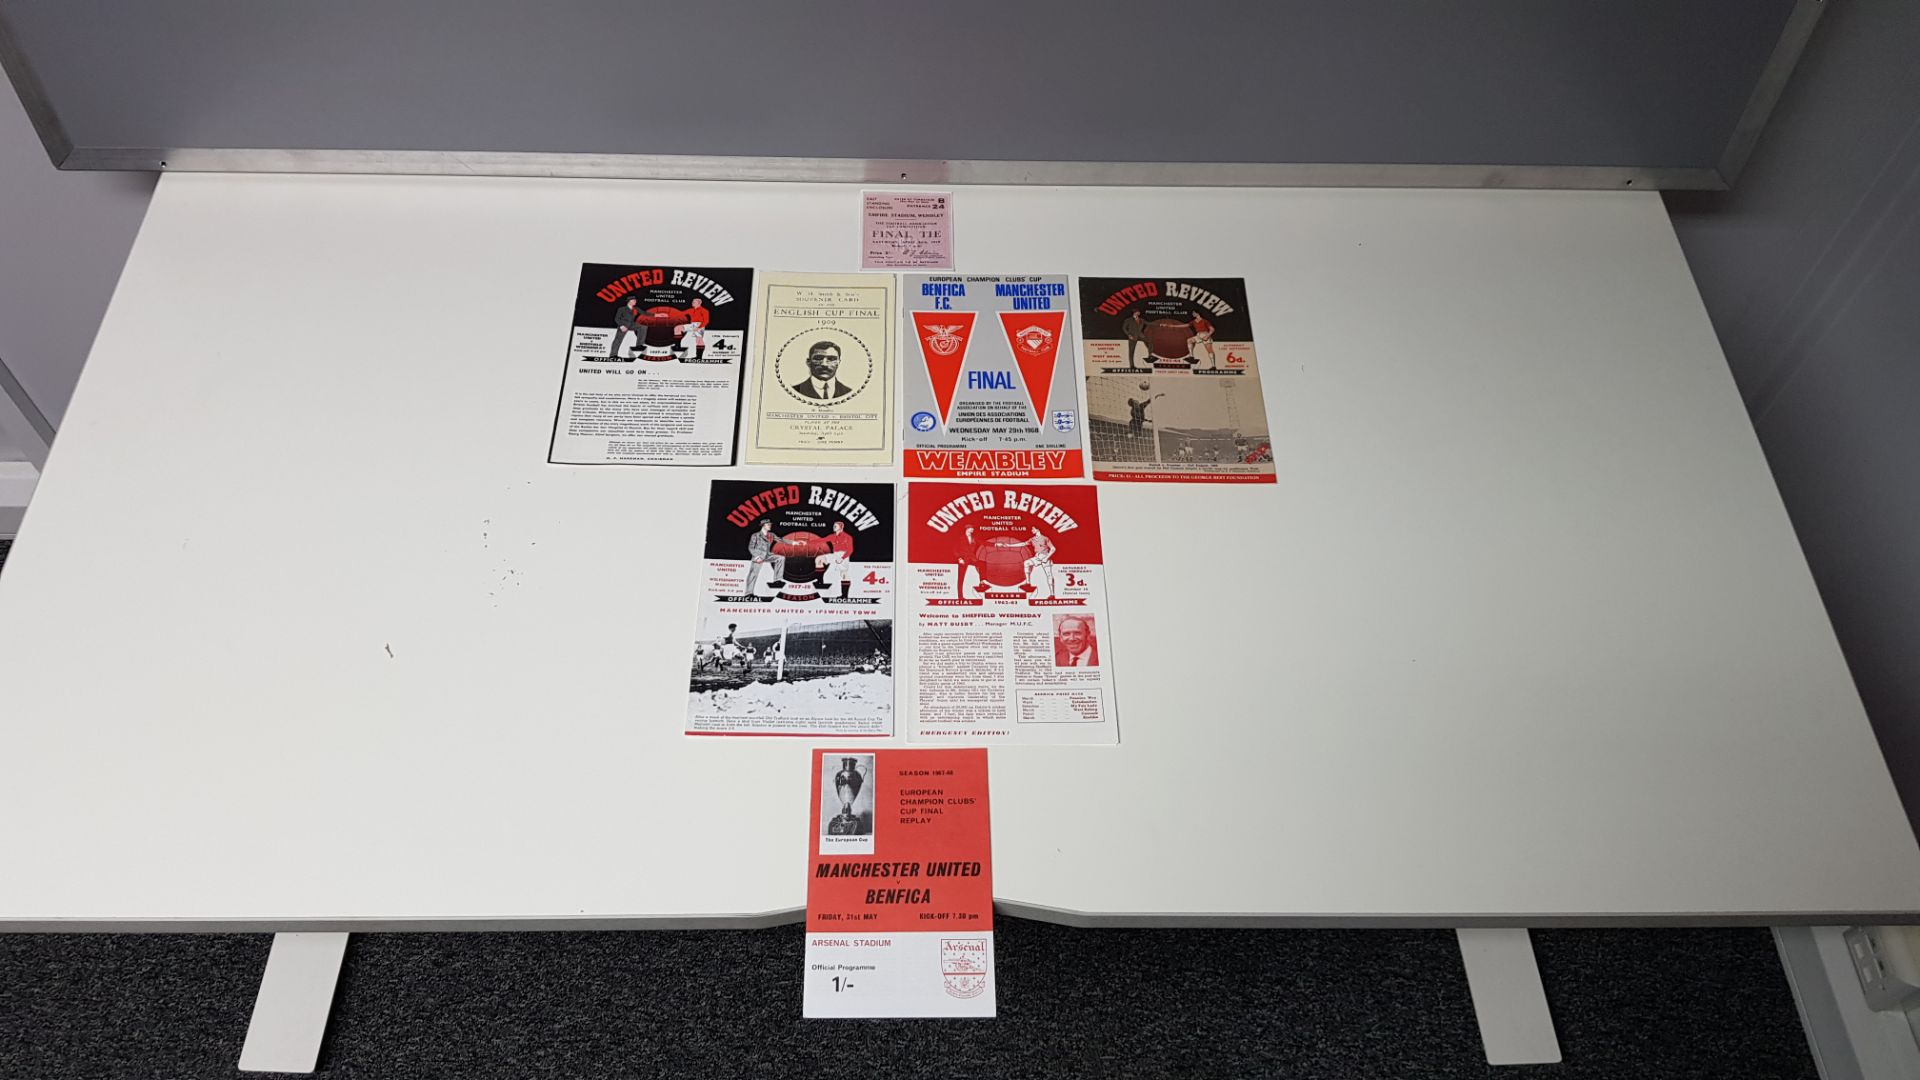 8 X REPLICA MANCHESTER UNITED PROGRAMMES #COPIES.. & 1 X COPY TICKET STUB - FURTHER INFO ON ONLINE - Image 2 of 2